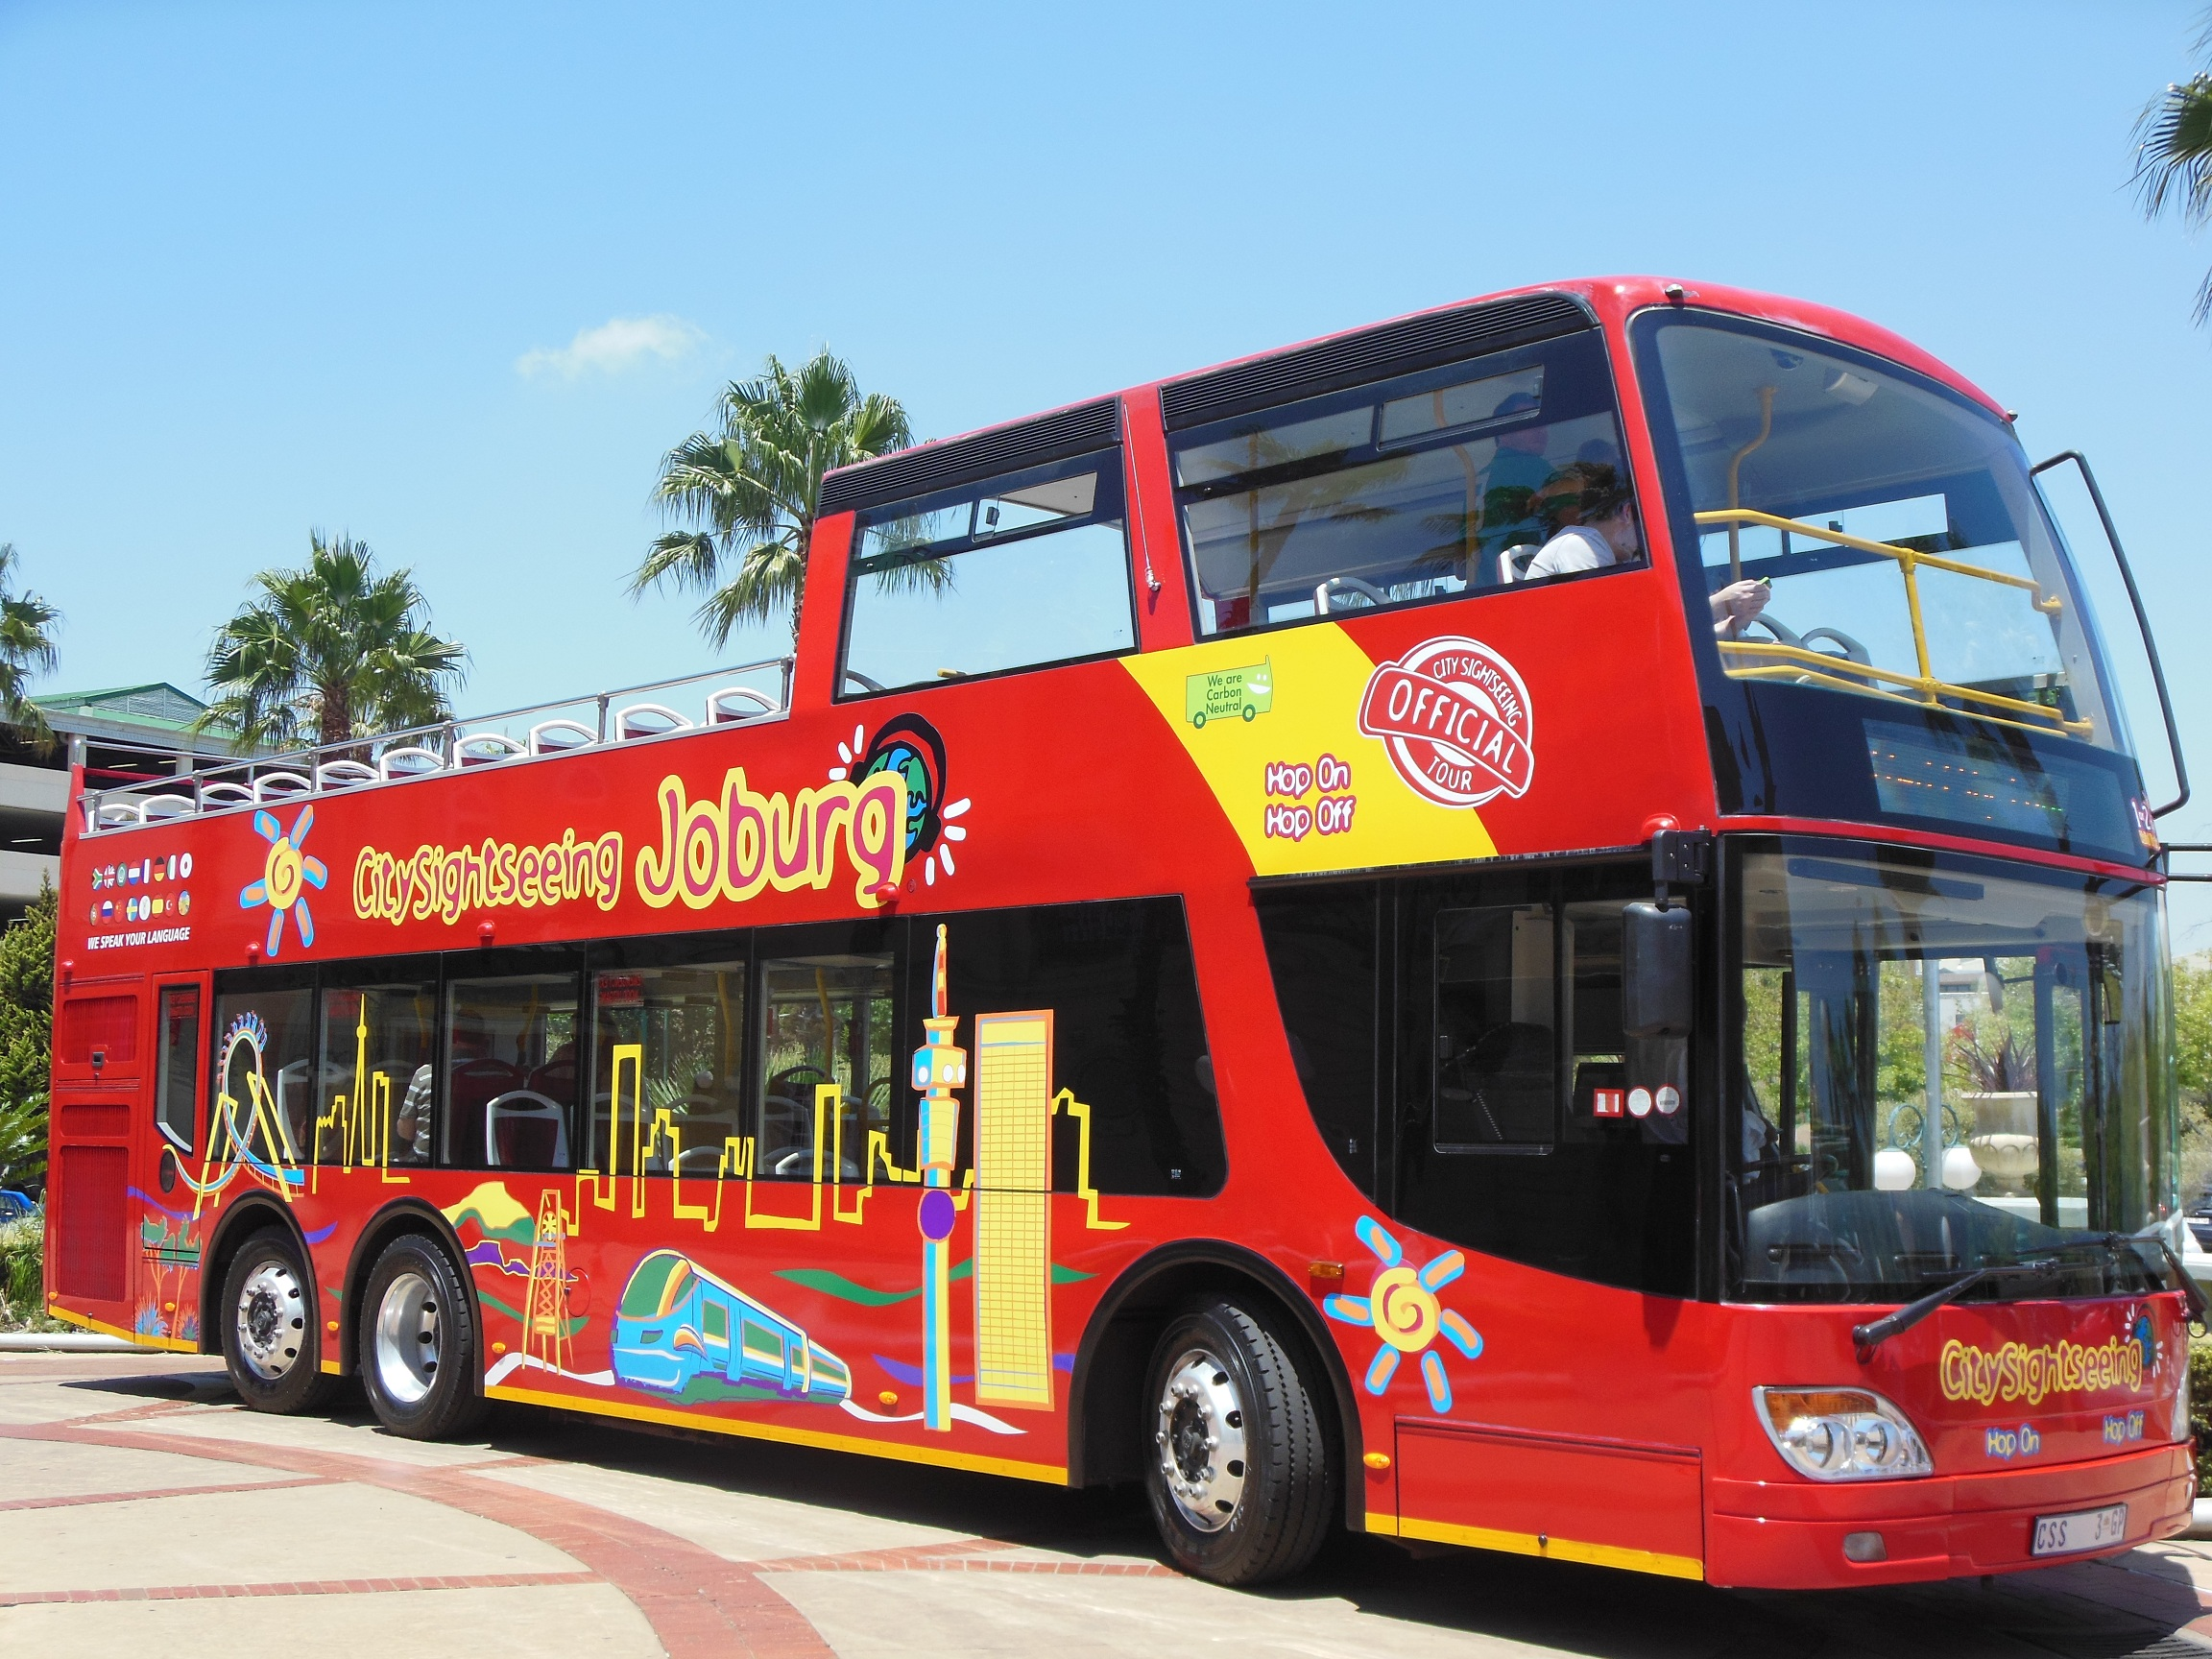 City Sightseeing Buses come to Jozi. Pic: Anina Mumm